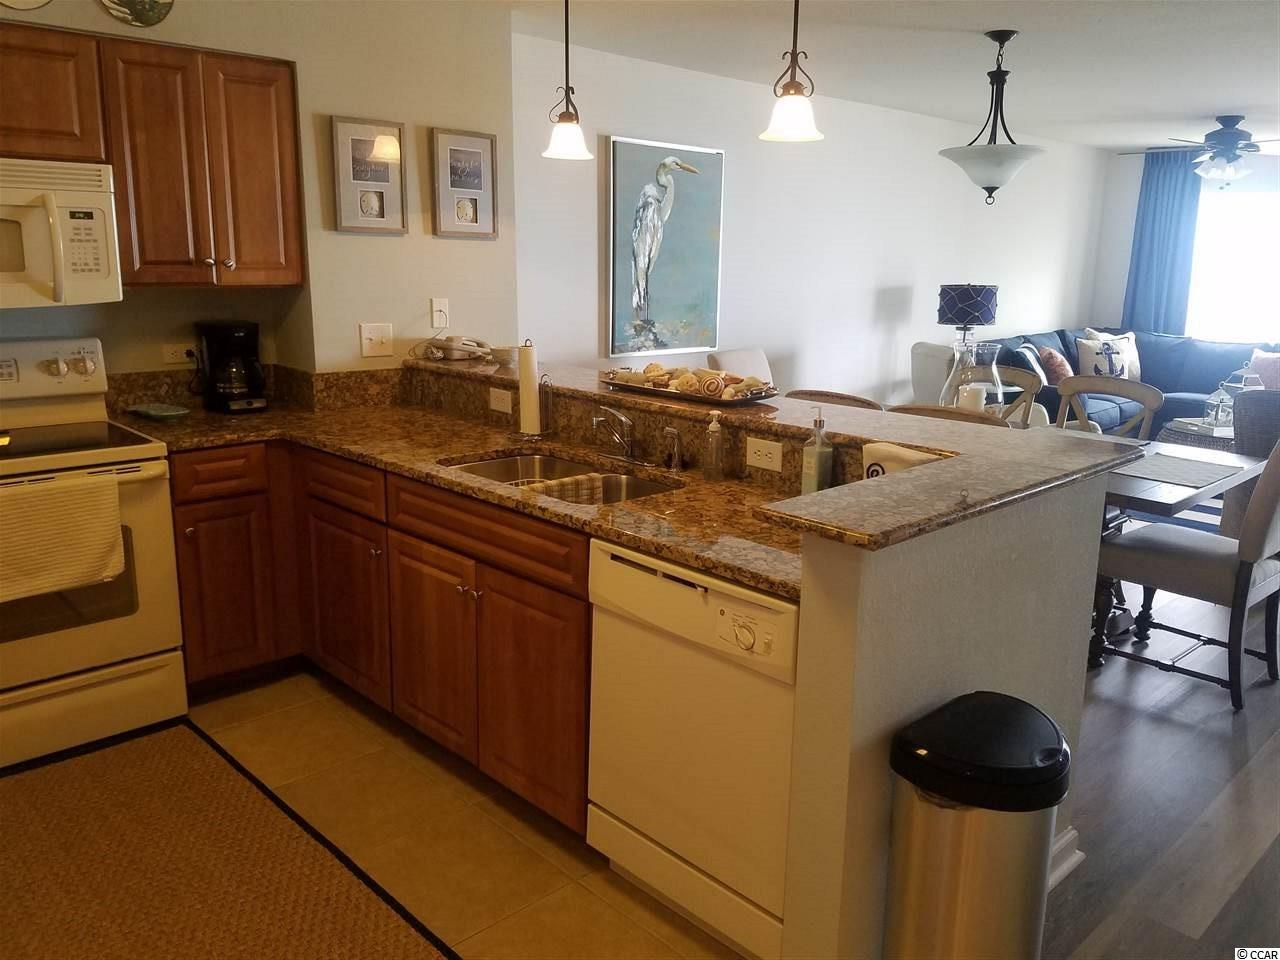 Tilghman Beach &Golf condo for sale in North Myrtle Beach, SC